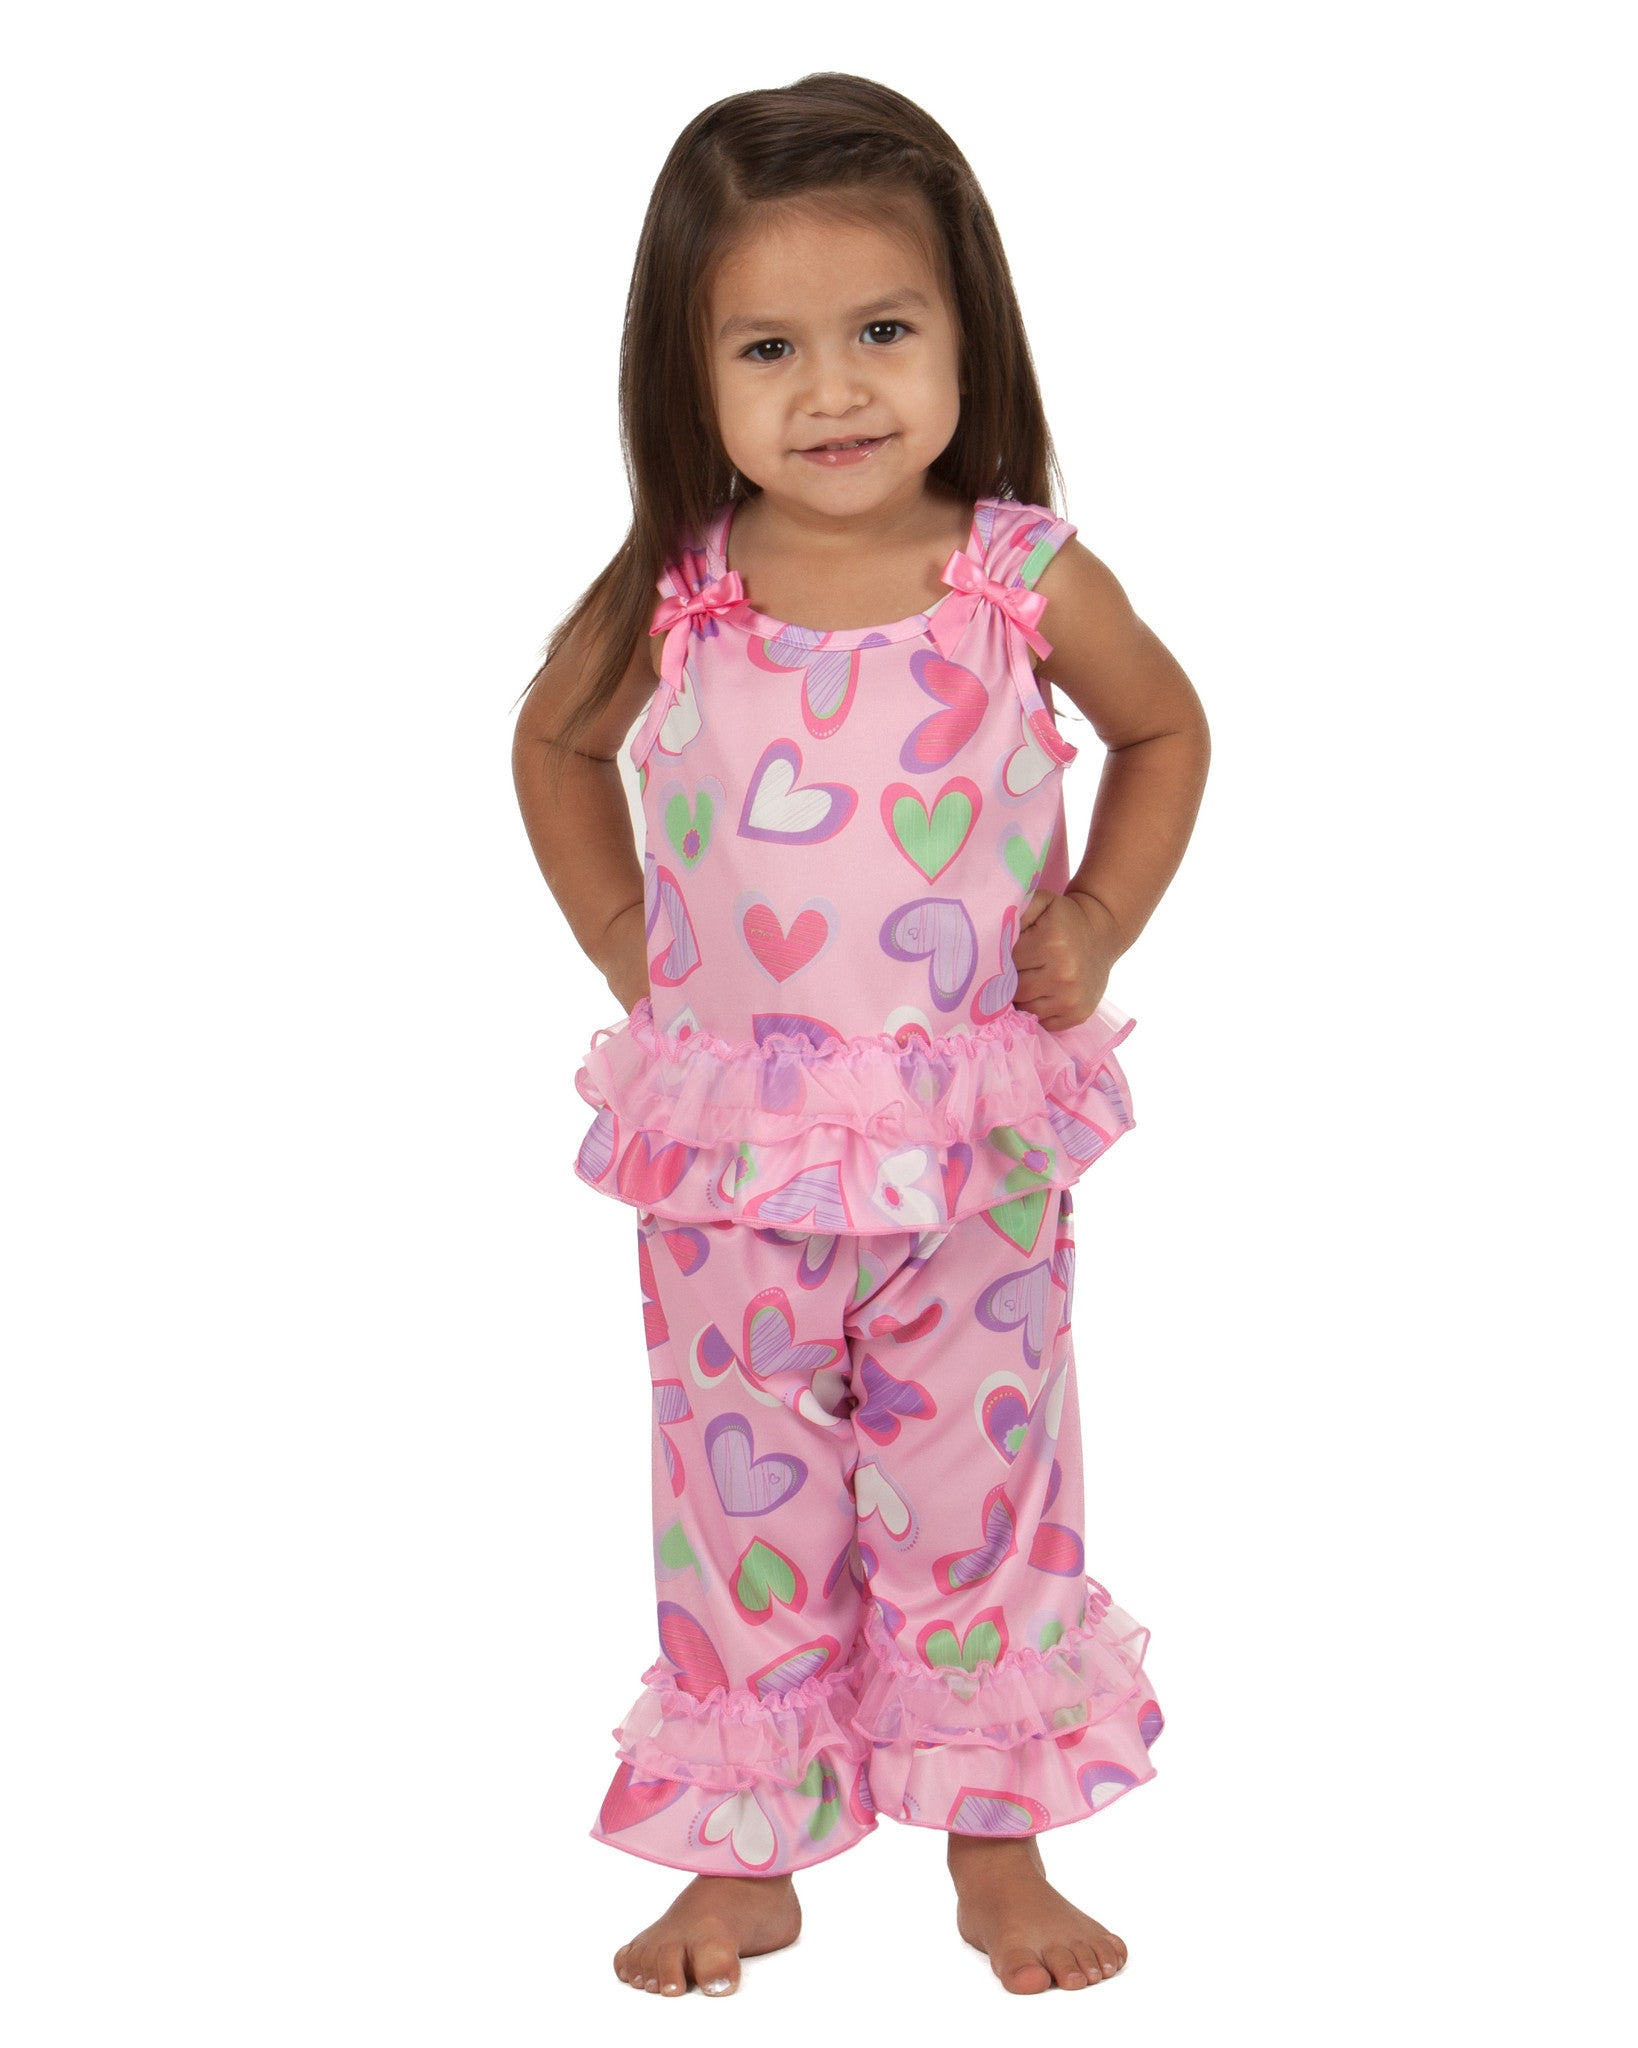 Laura Dare Heart To Heart Bow Top Pajama (6m - 6x)